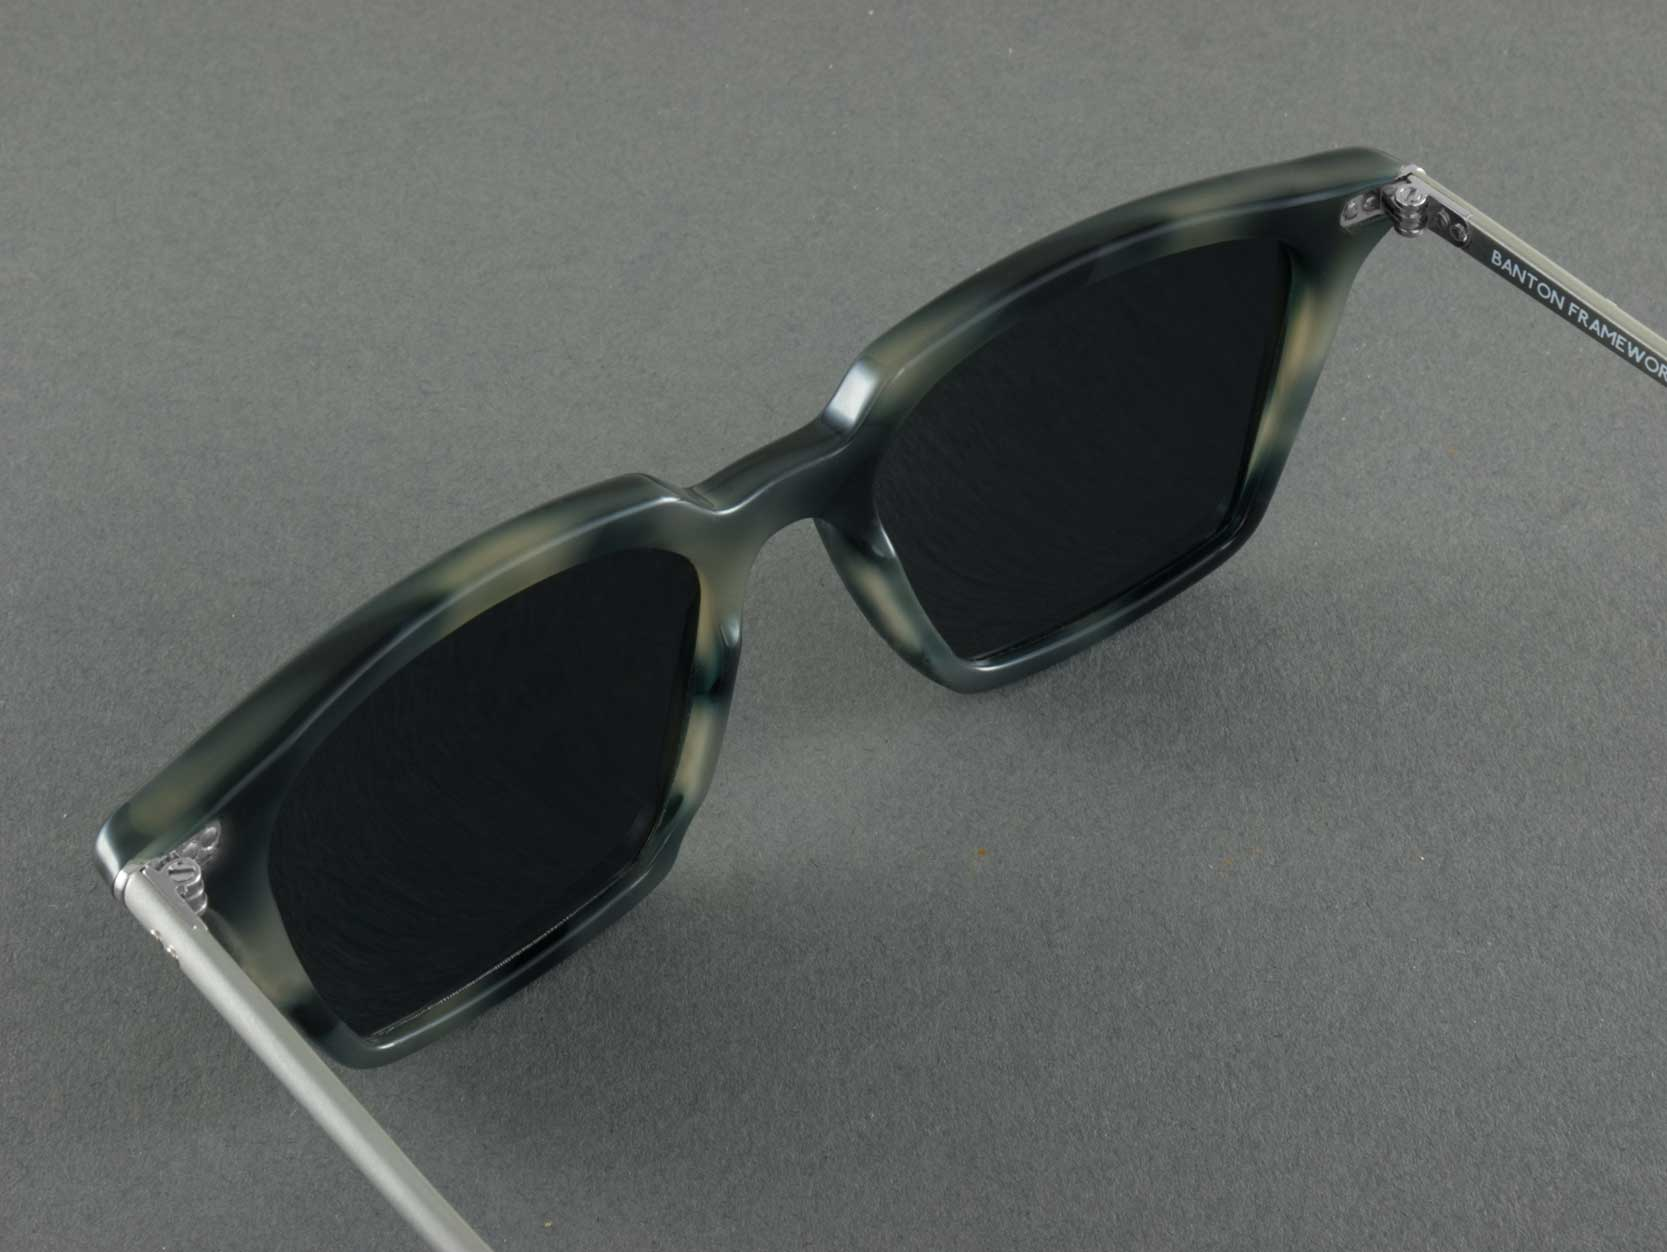 Square Polarised sunglasses Frame aerial view